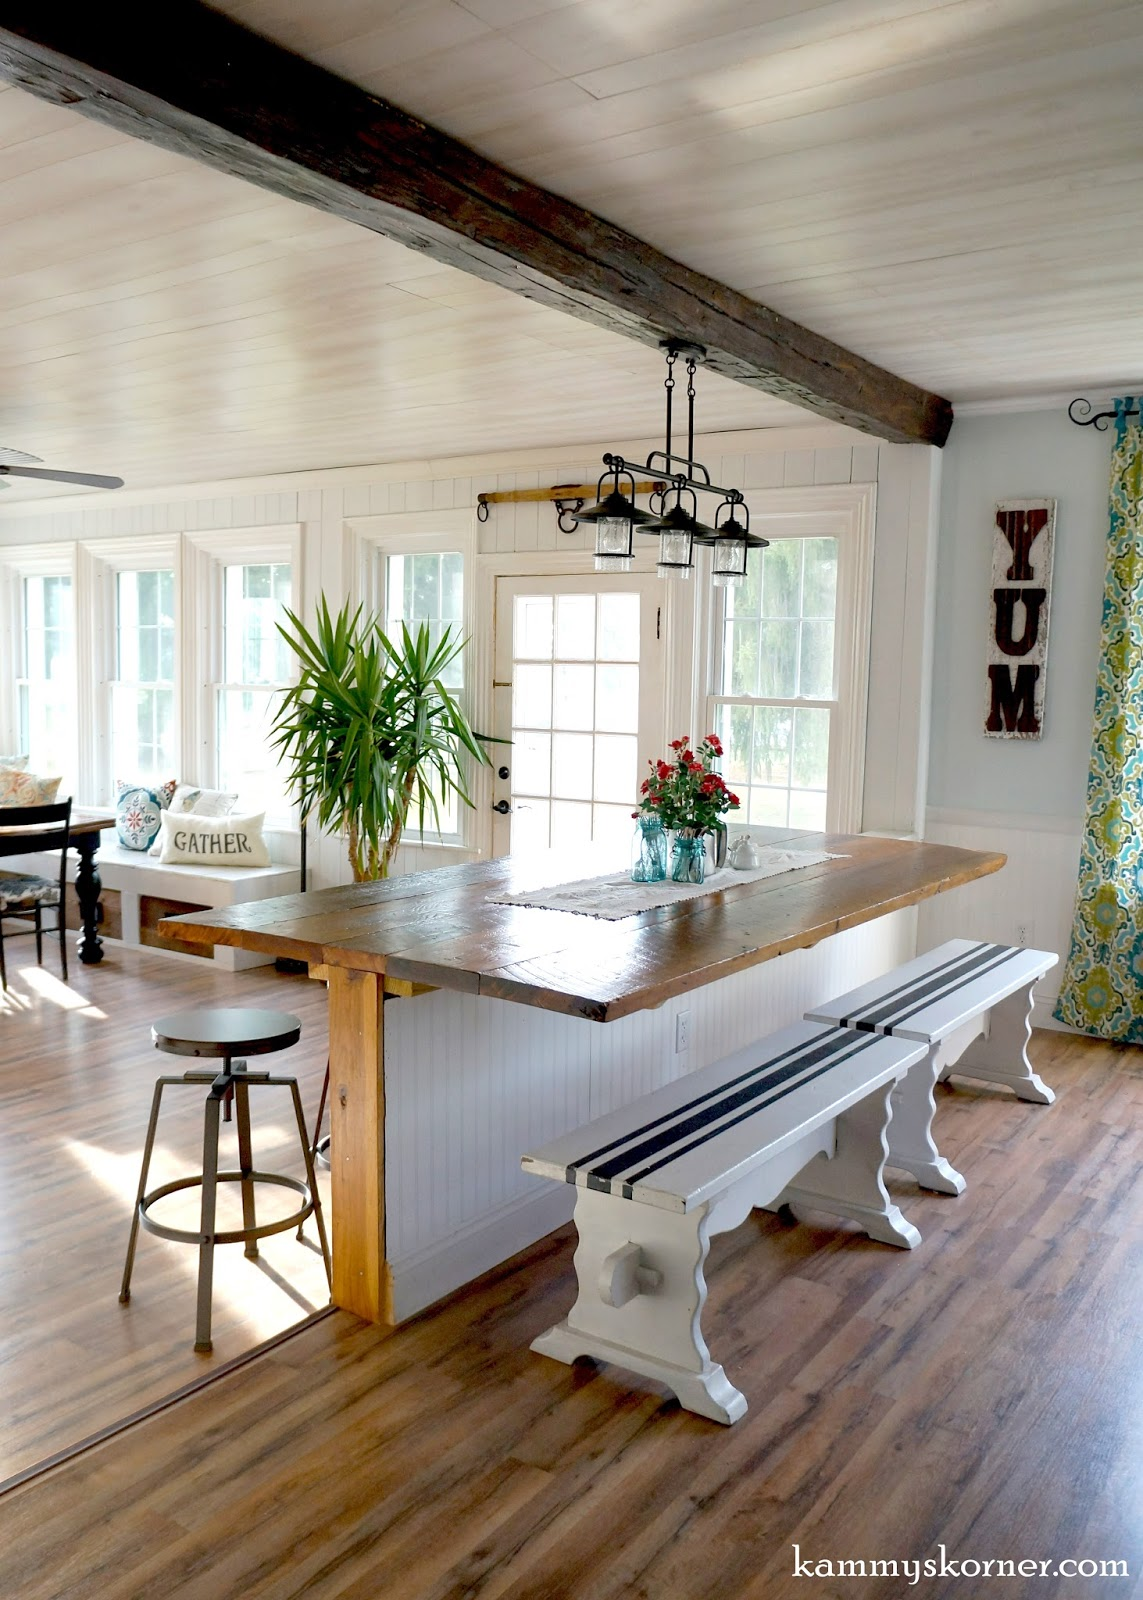 16 Sunroom And Dining Room Renovation, Built In Table Made Of Reclaimed Wood ,